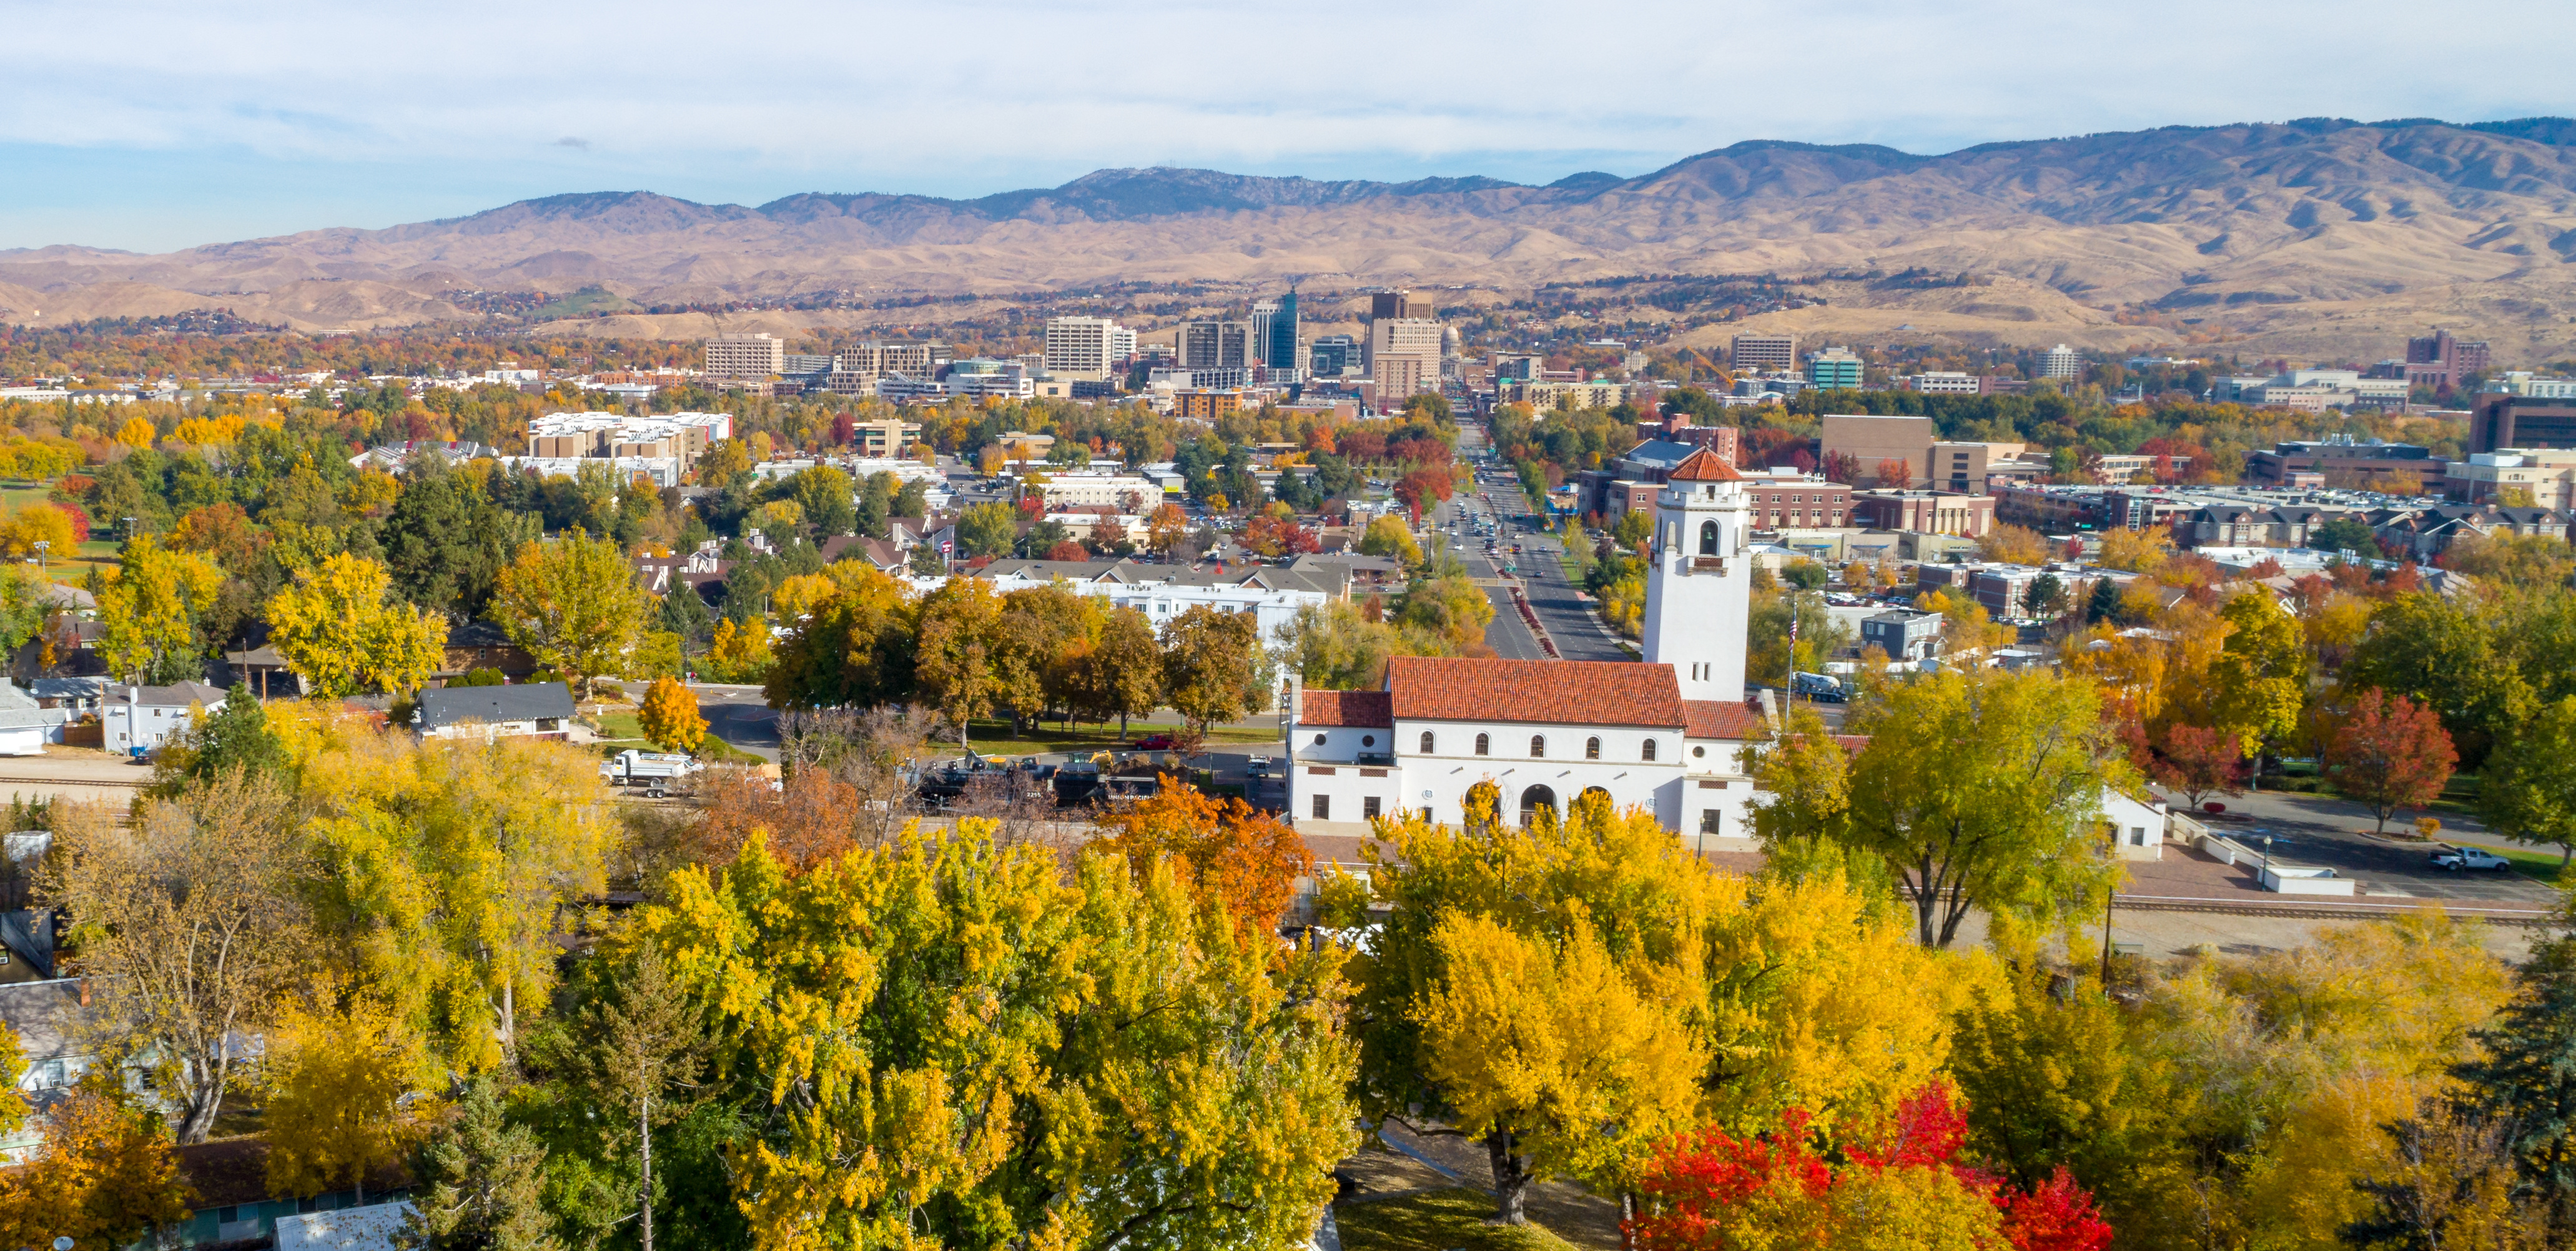 View of downtown Boise and train depot in the fall